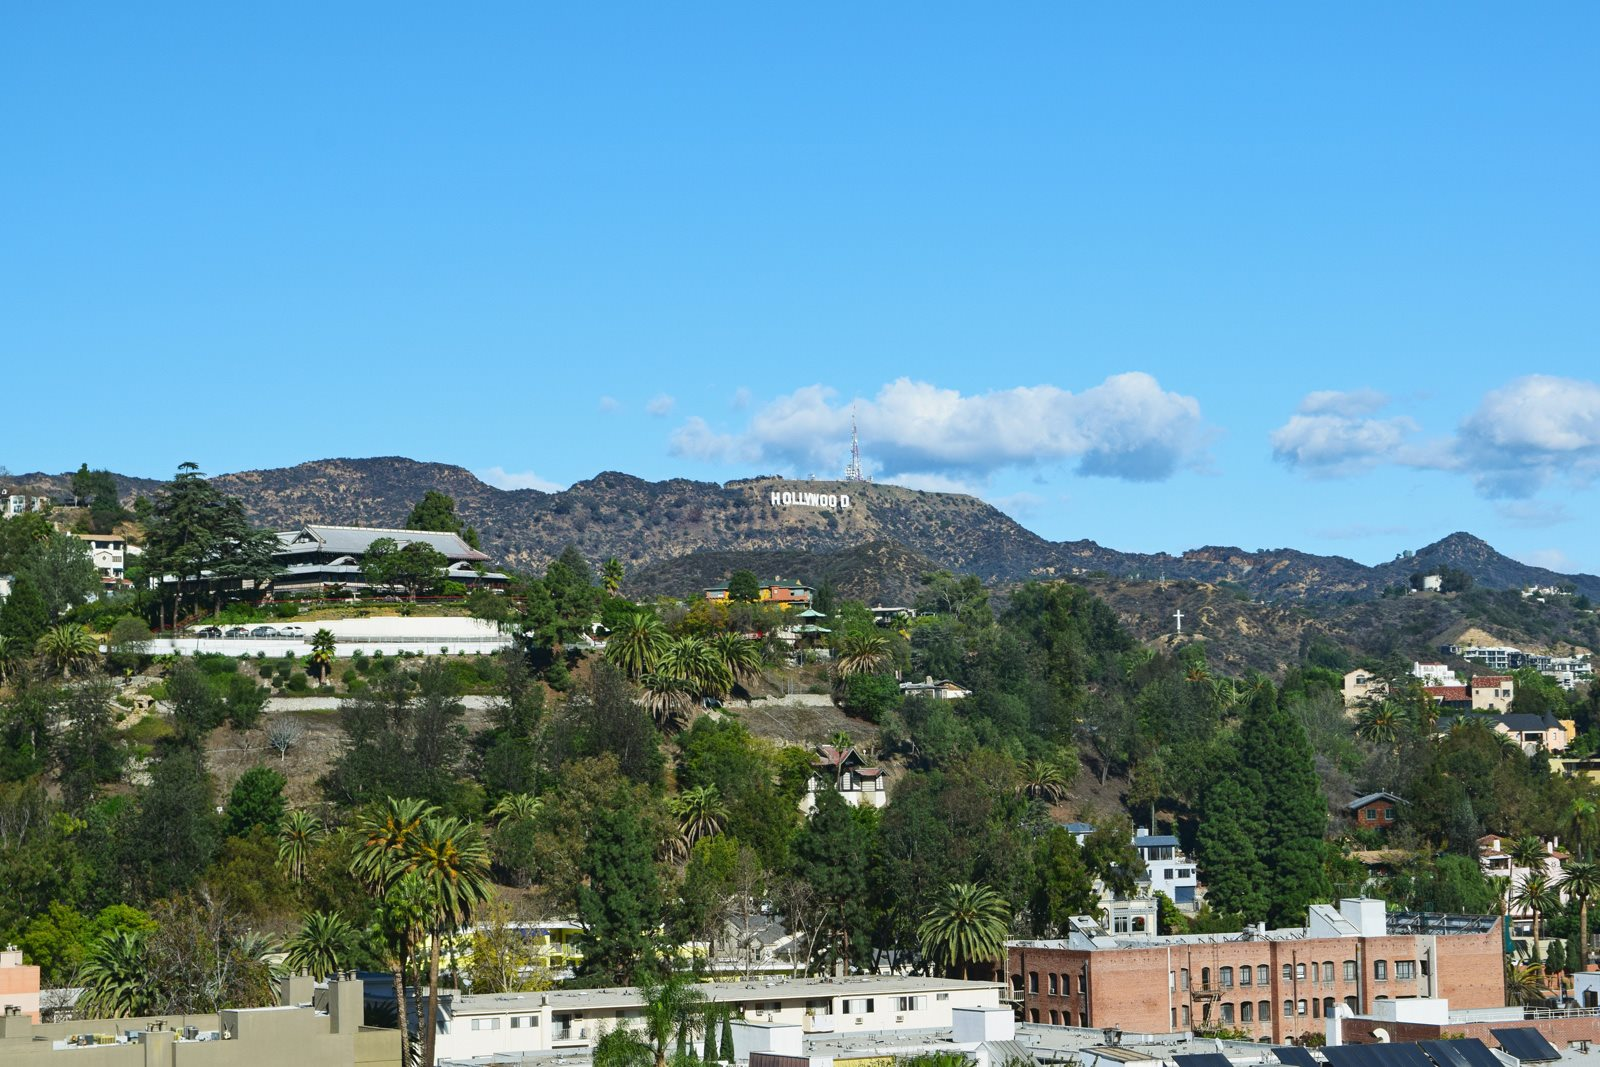 Enjoy Hollywood at Olympic by Windsor, 936 S. Olive St, Los Angeles